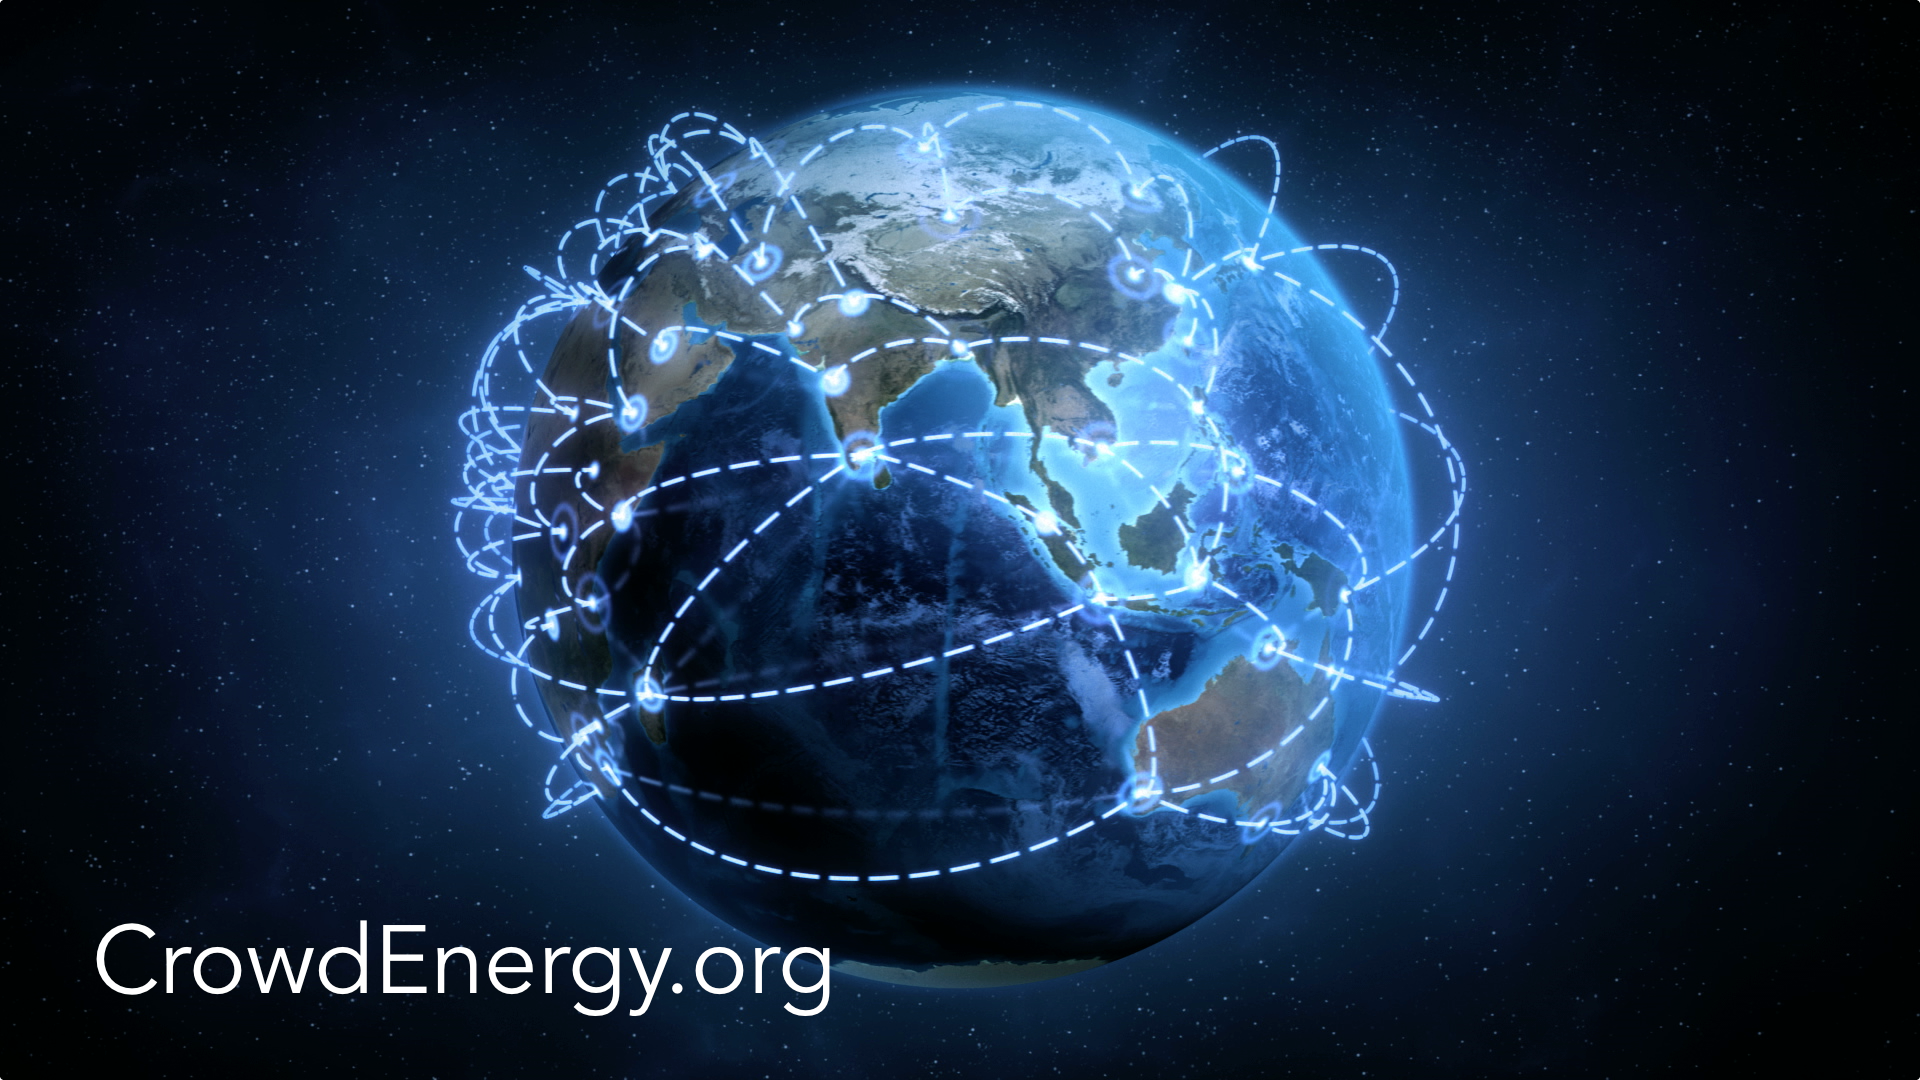 global energy Global energy news brings to you the latest in energy news, including biogas, oil, gas, renewables, and much more.